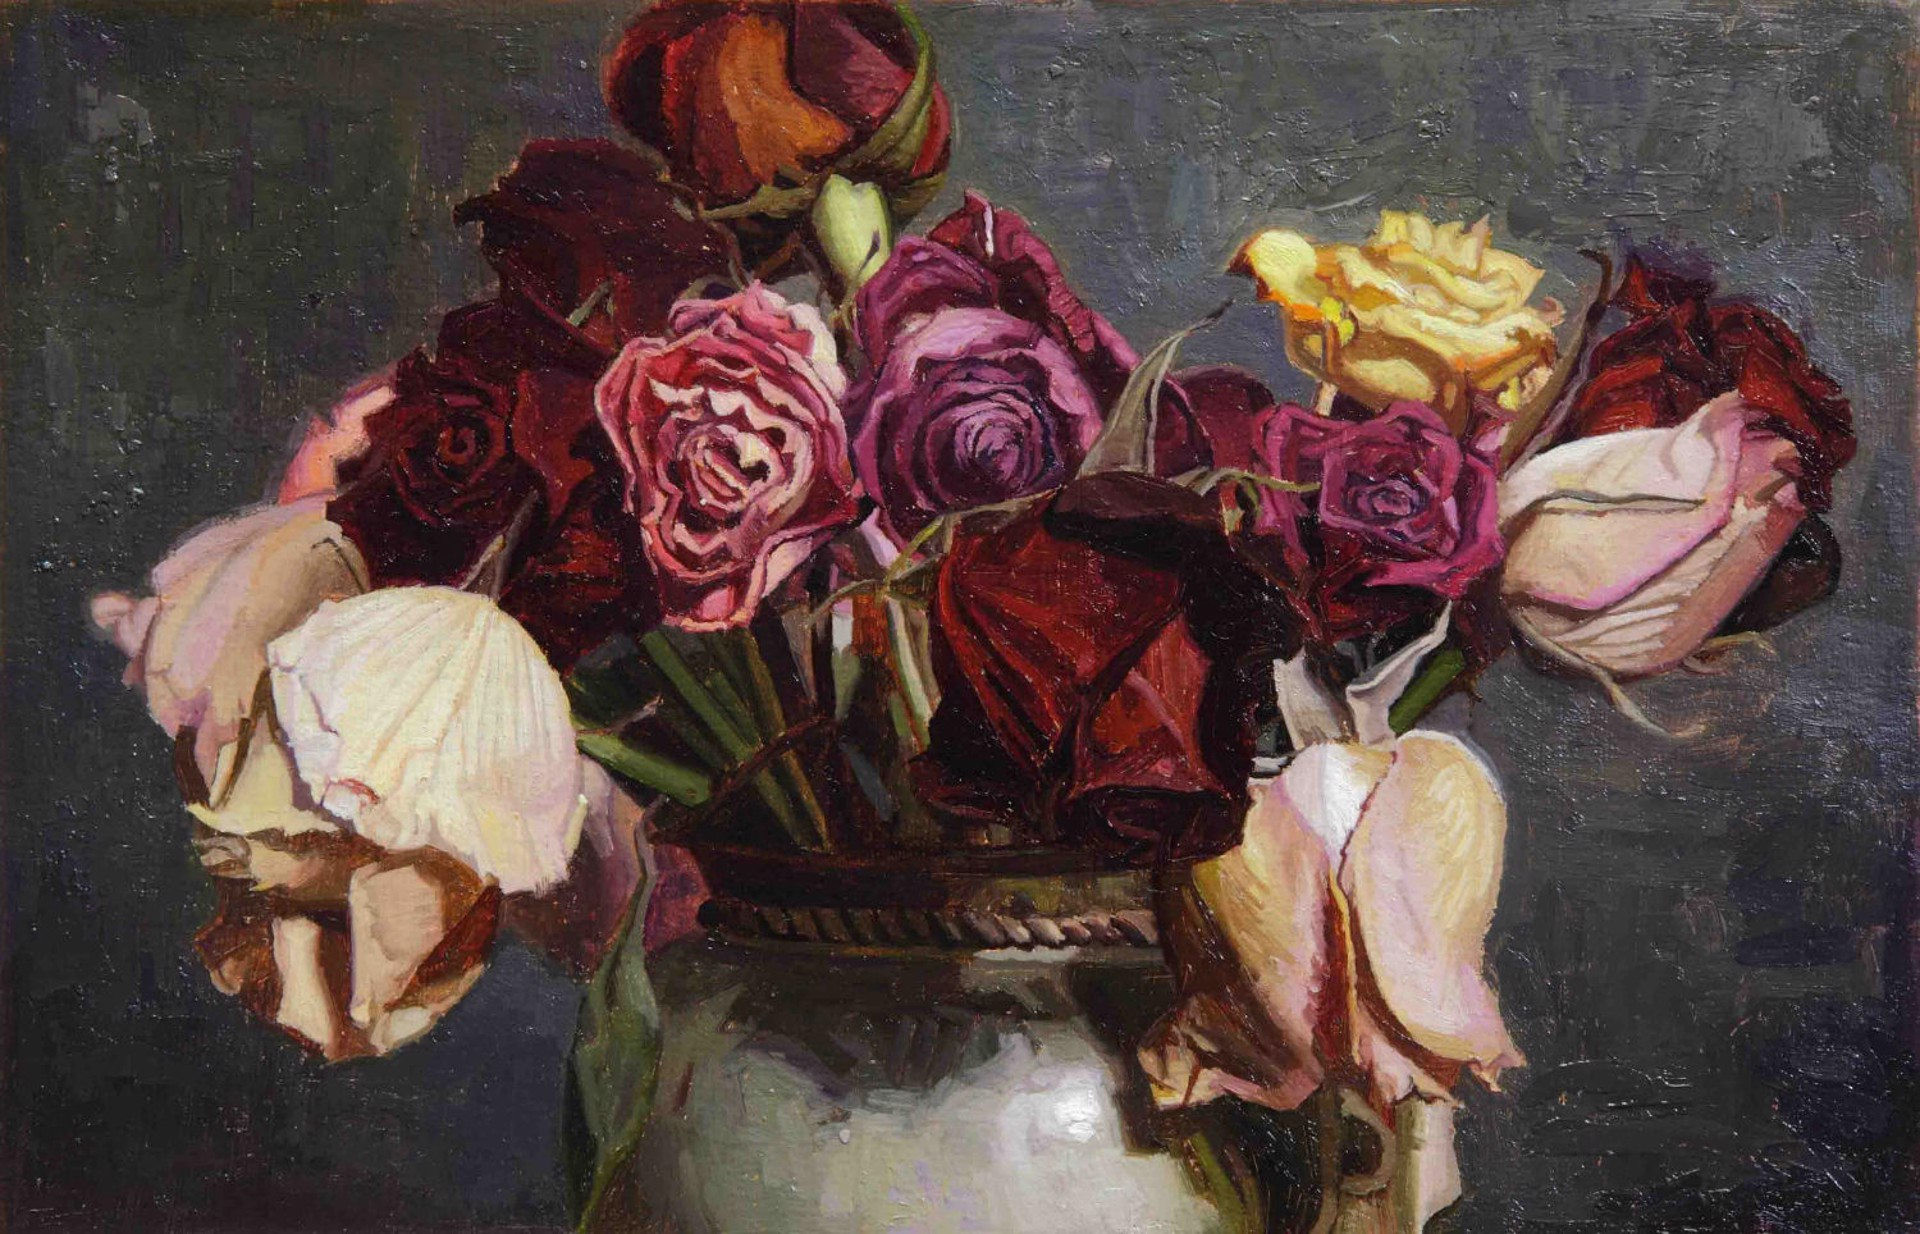 Still Life with Dead Roses by Greg Gandy